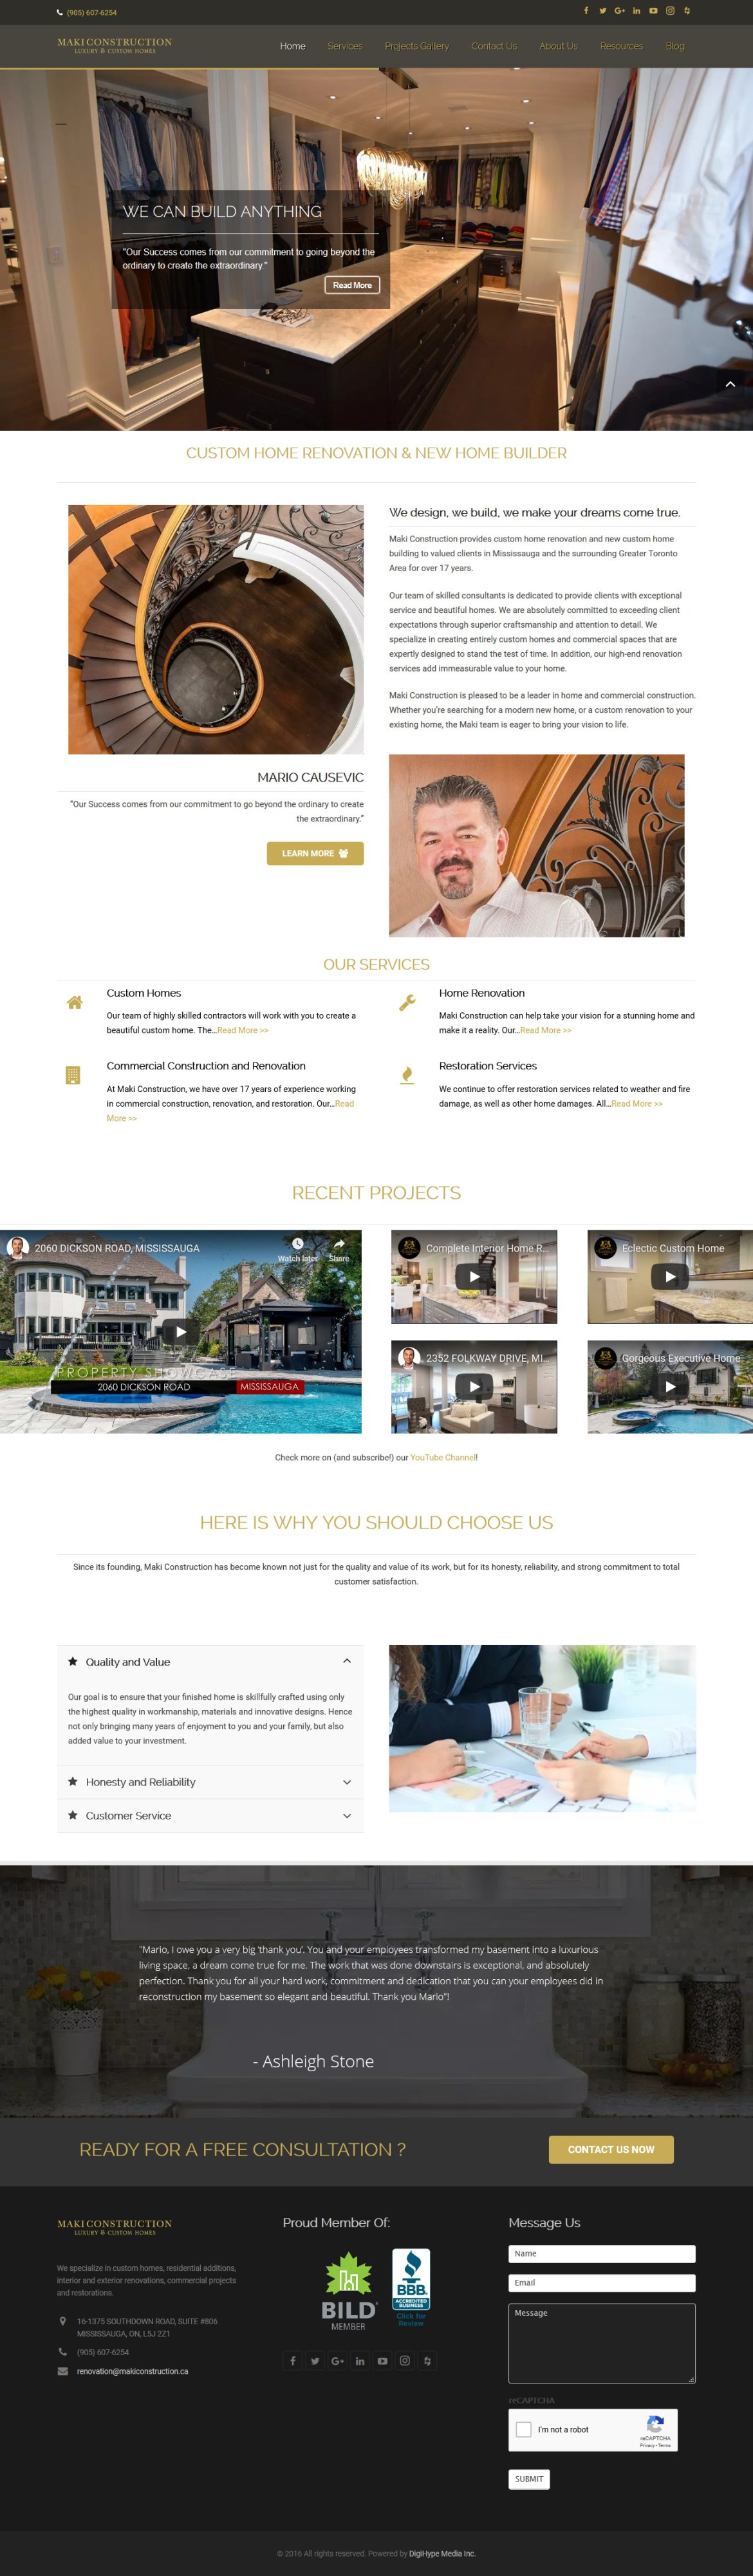 Home renovation and custom homes in Mississsauga (Website design Mockup)